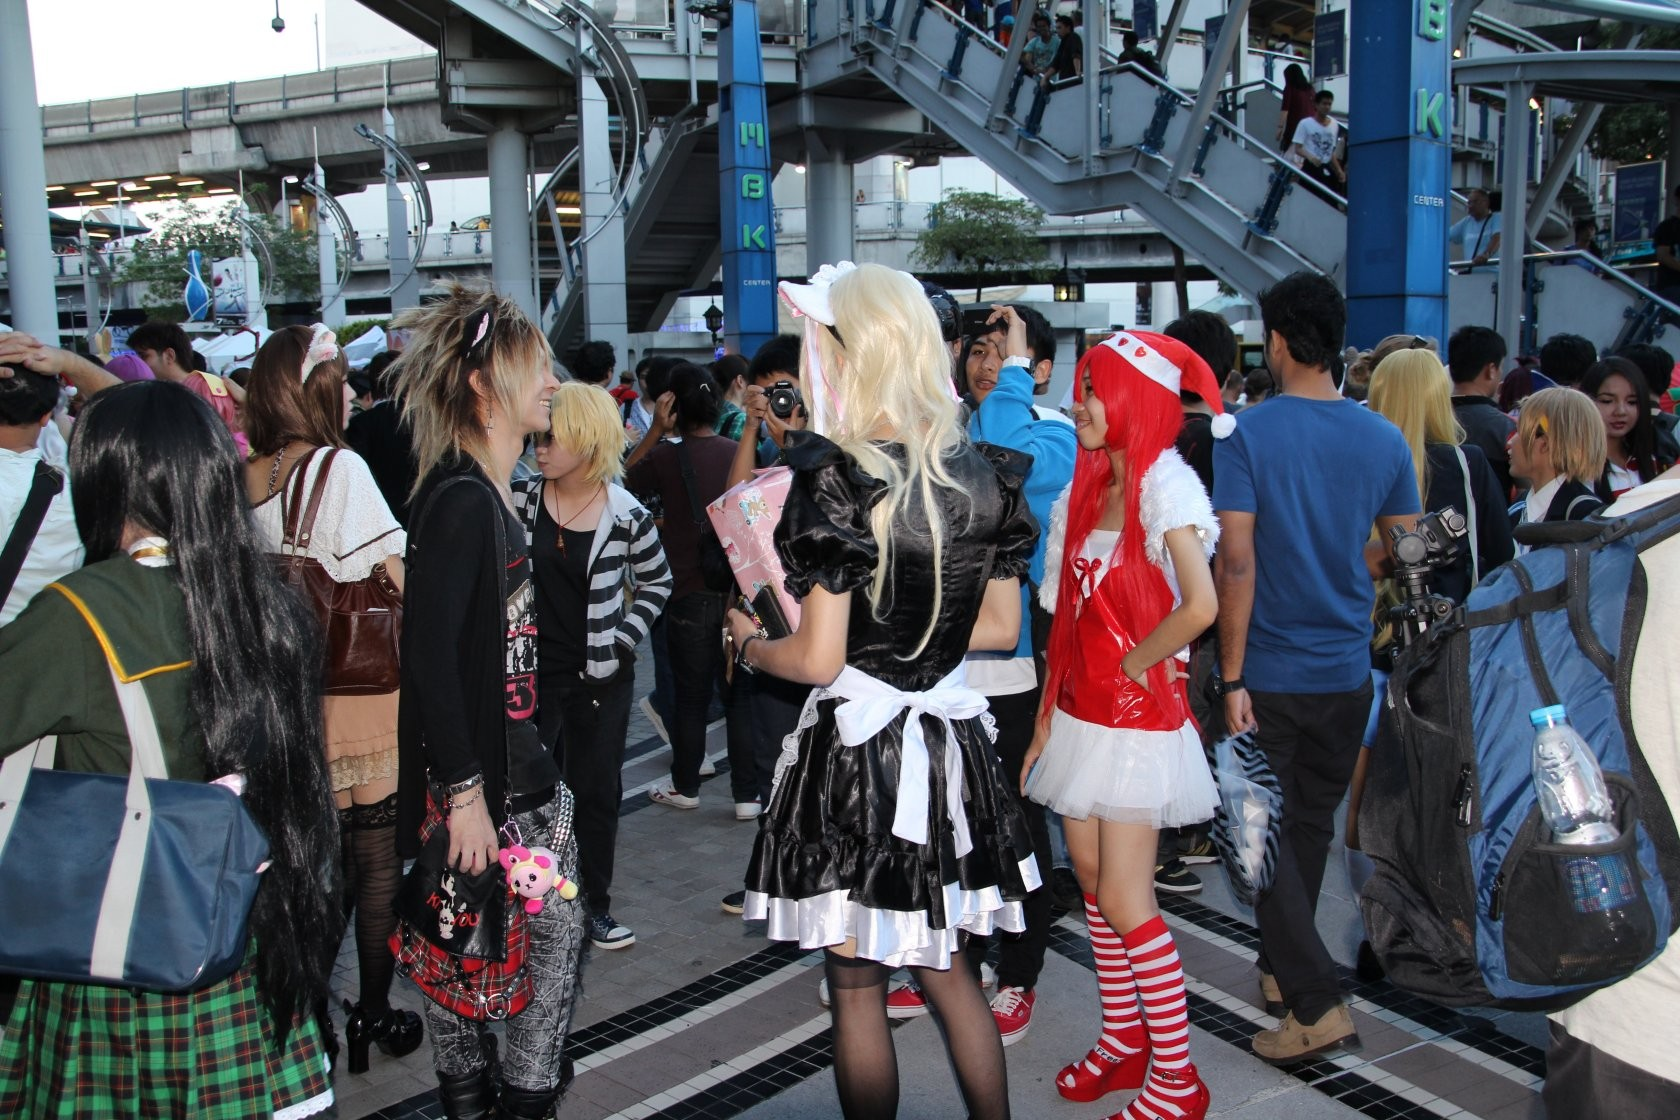 Bangkok - Cosplay / Festival J-Trends in Town am MBK XXXI